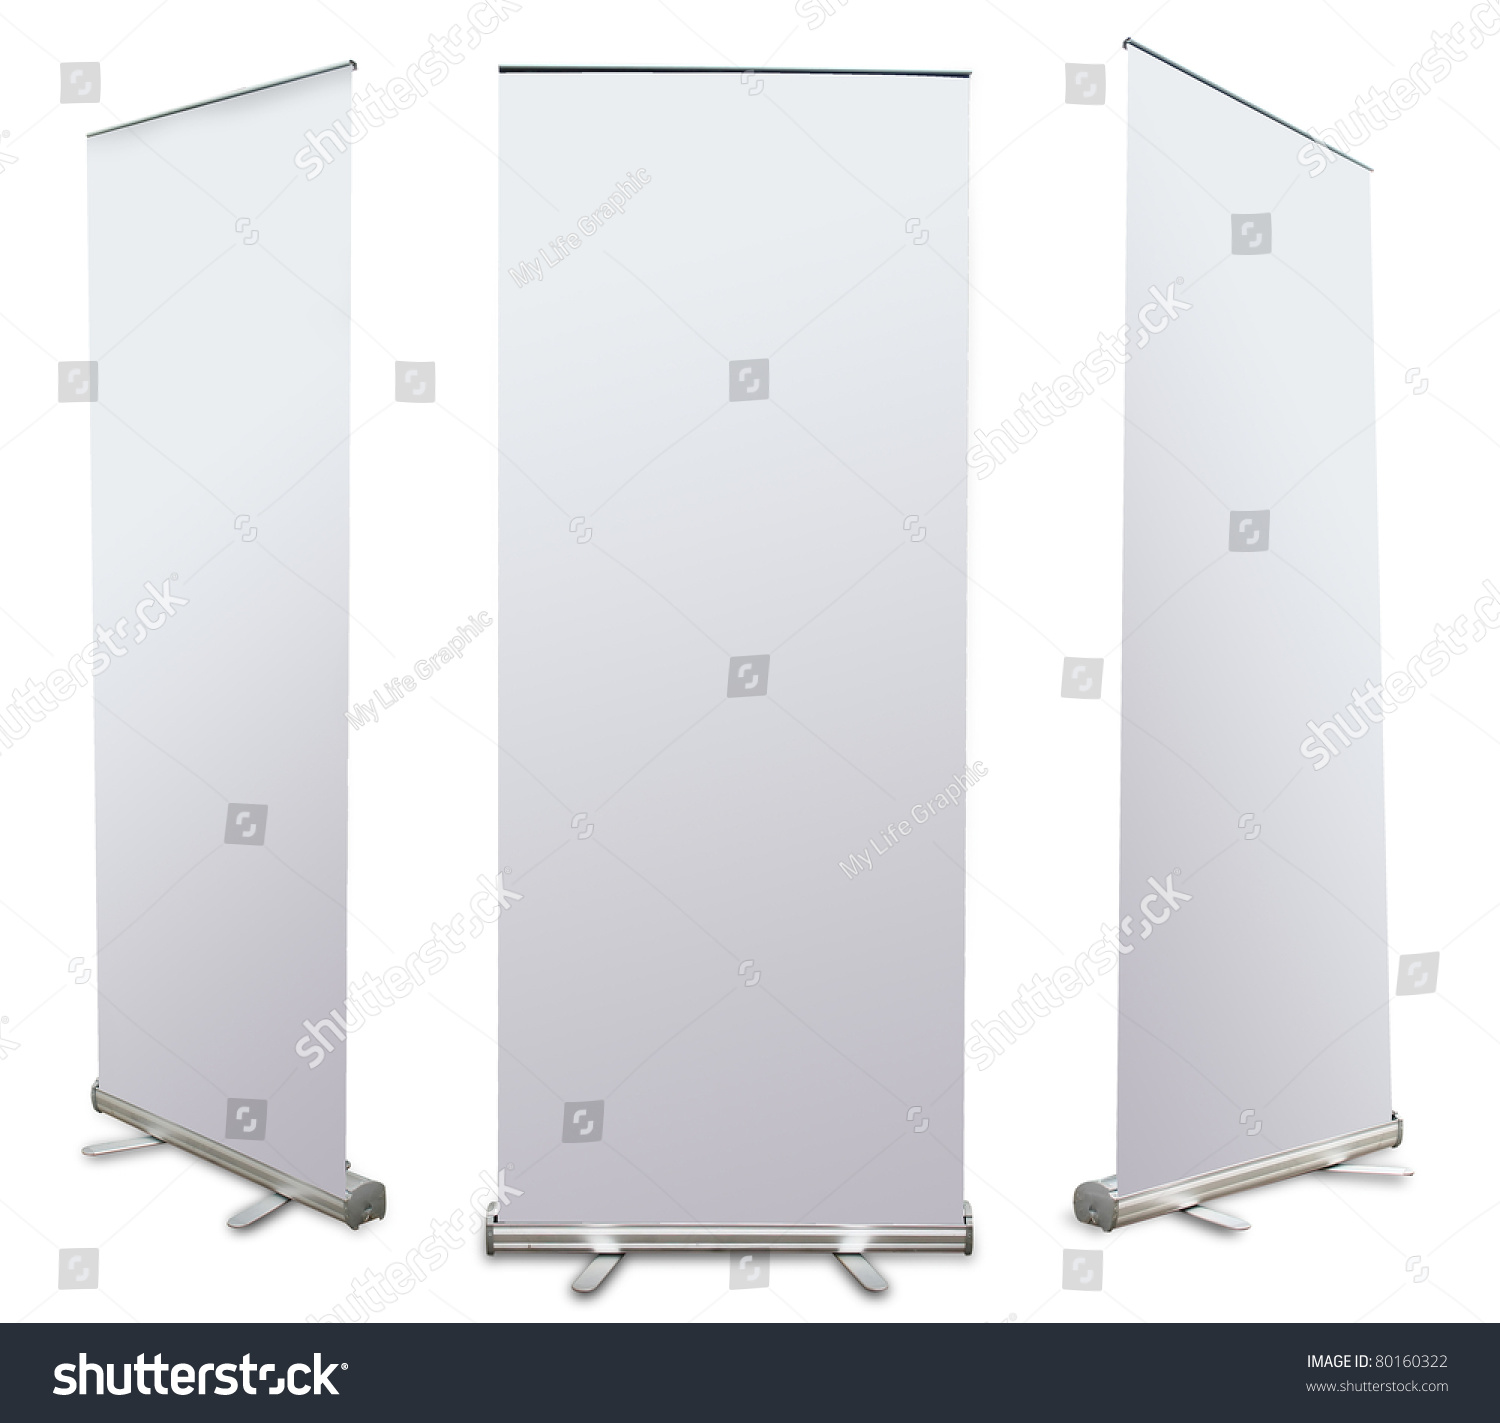 blank roll banner display 3 view stock illustration 80160322 blank roll up banner display 3 view template for design work